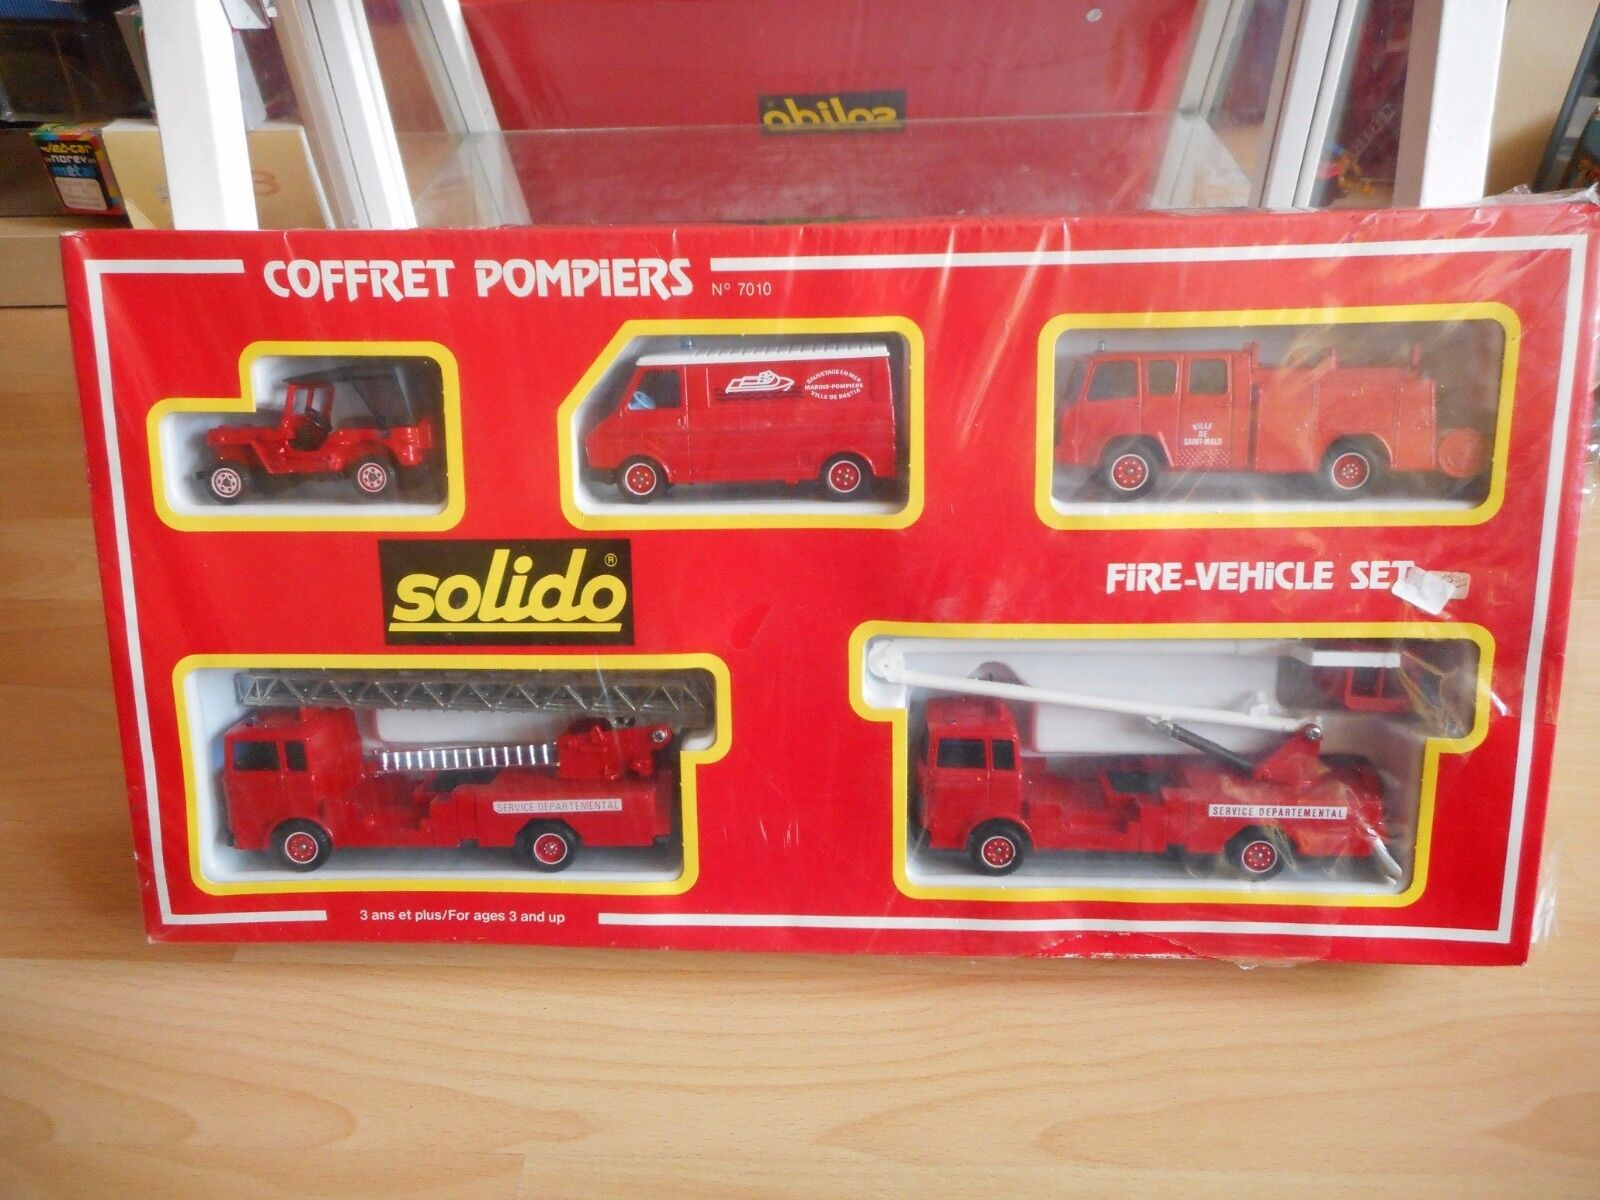 Solido Coffret Pompiers Gift set in Box (Sealed) (solido nr  7010)